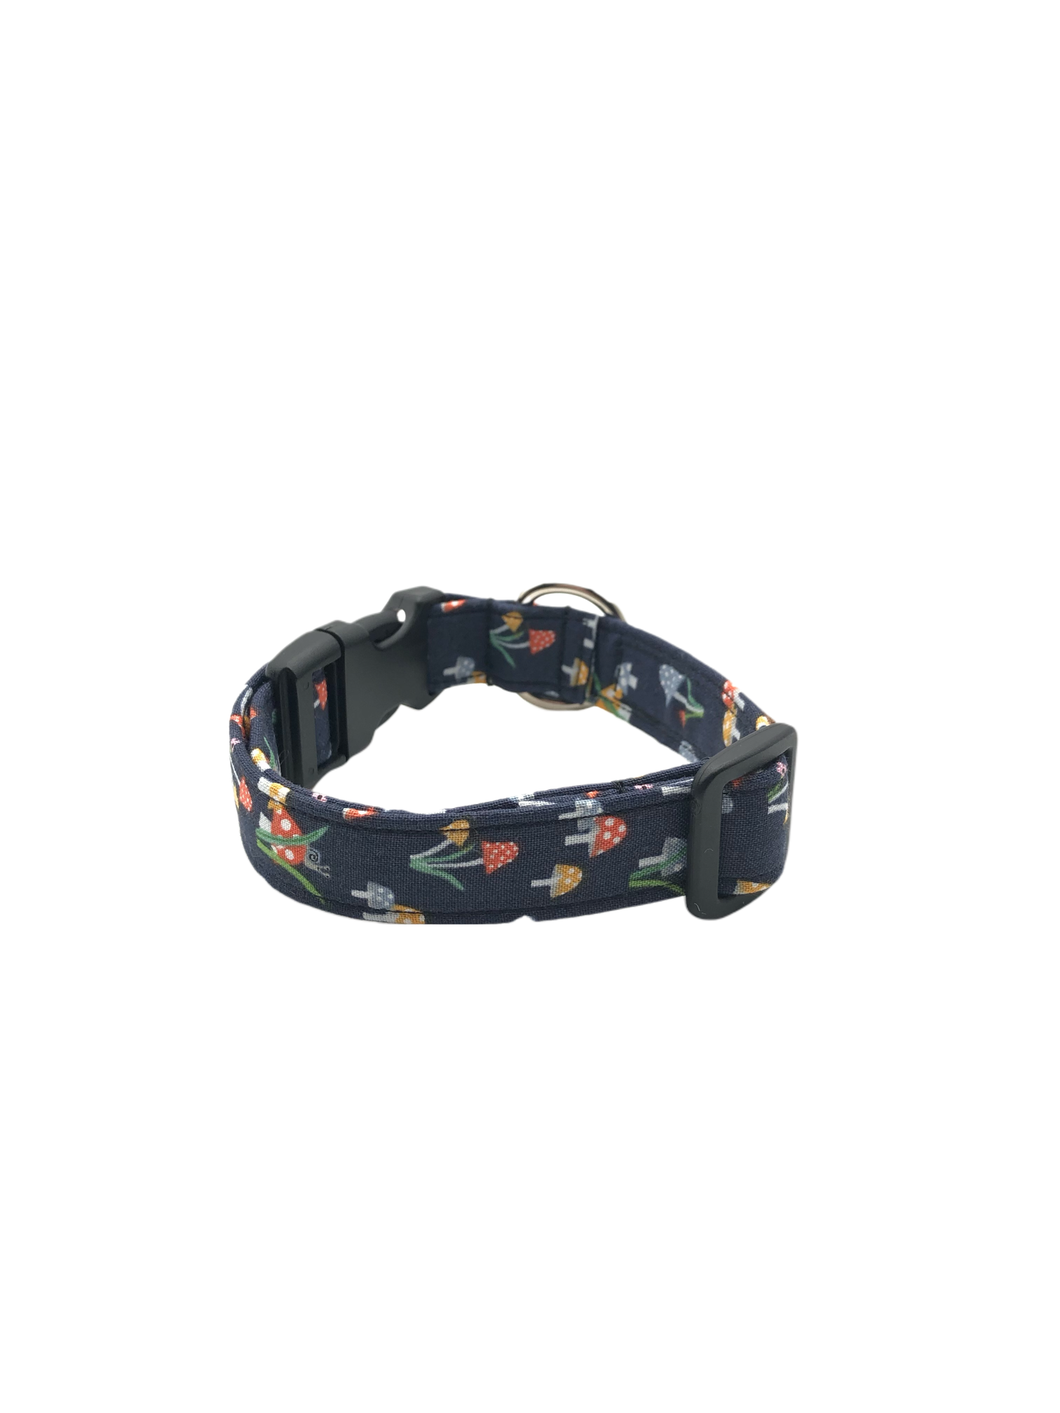 Fun Mushroom Dog Collar